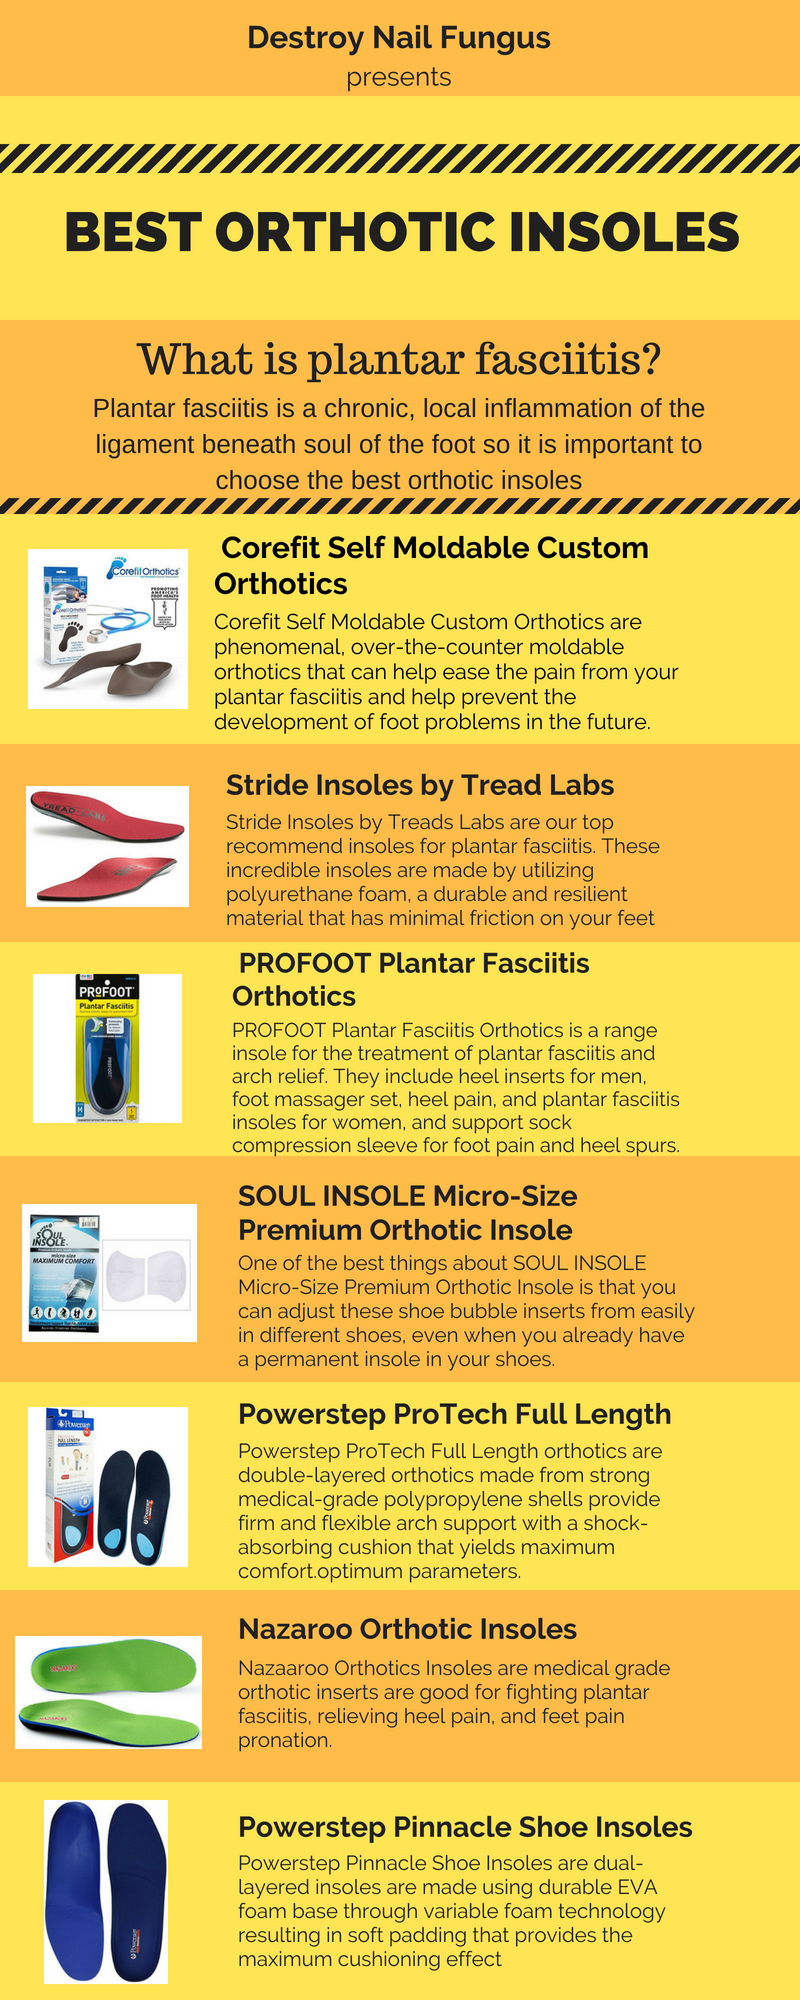 06ea19589c Are you suffering from the Plantar fasciitis? Seeking the best over the counter  orthotics is not an easy task but Destroy Nail Fungus have done the  research ...